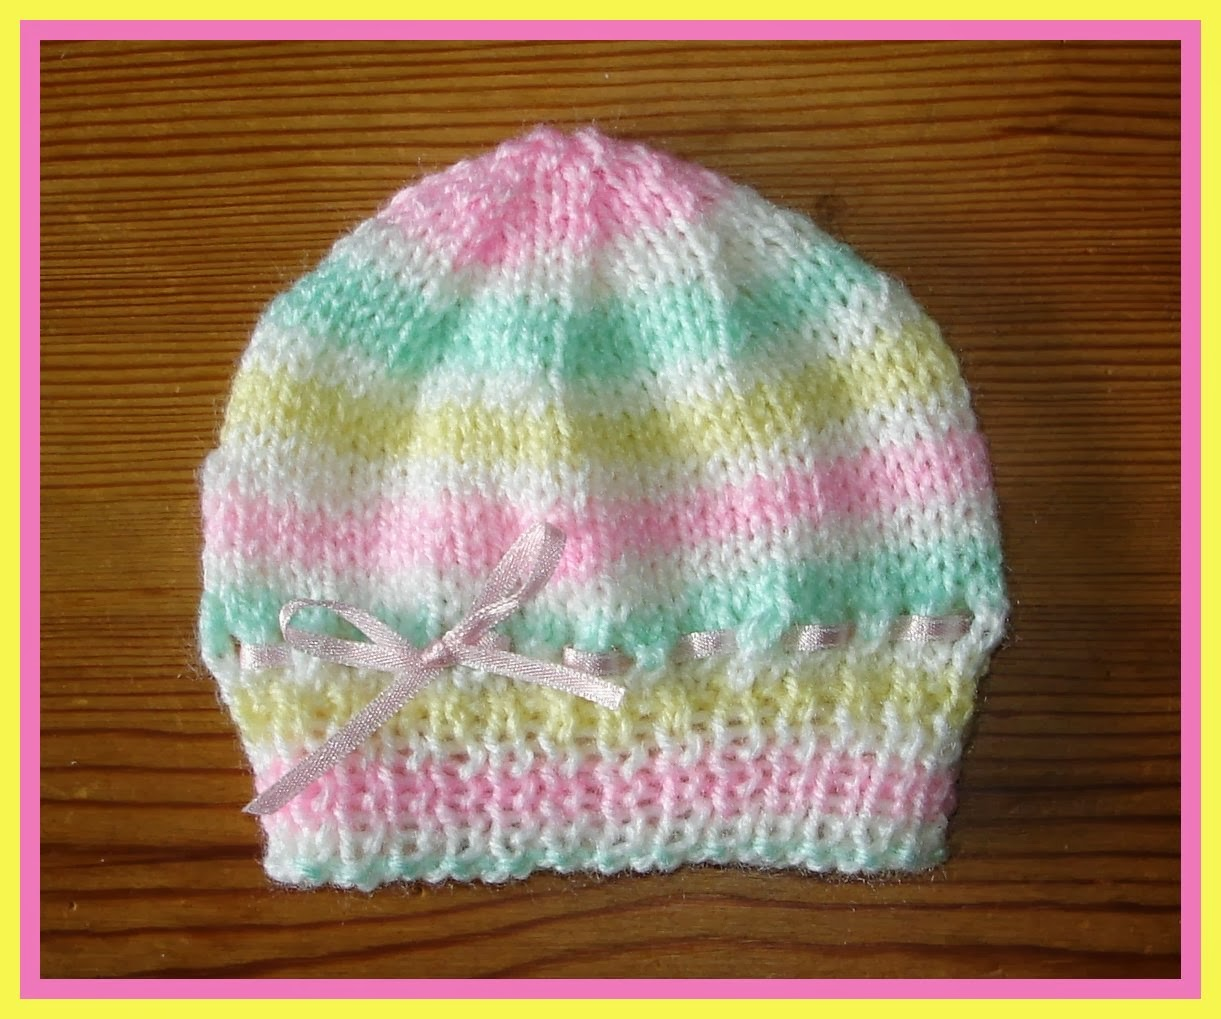 Knitted Daisy Flower Pattern : mariannas lazy daisy days: Candystripe Knitted Baby Hats